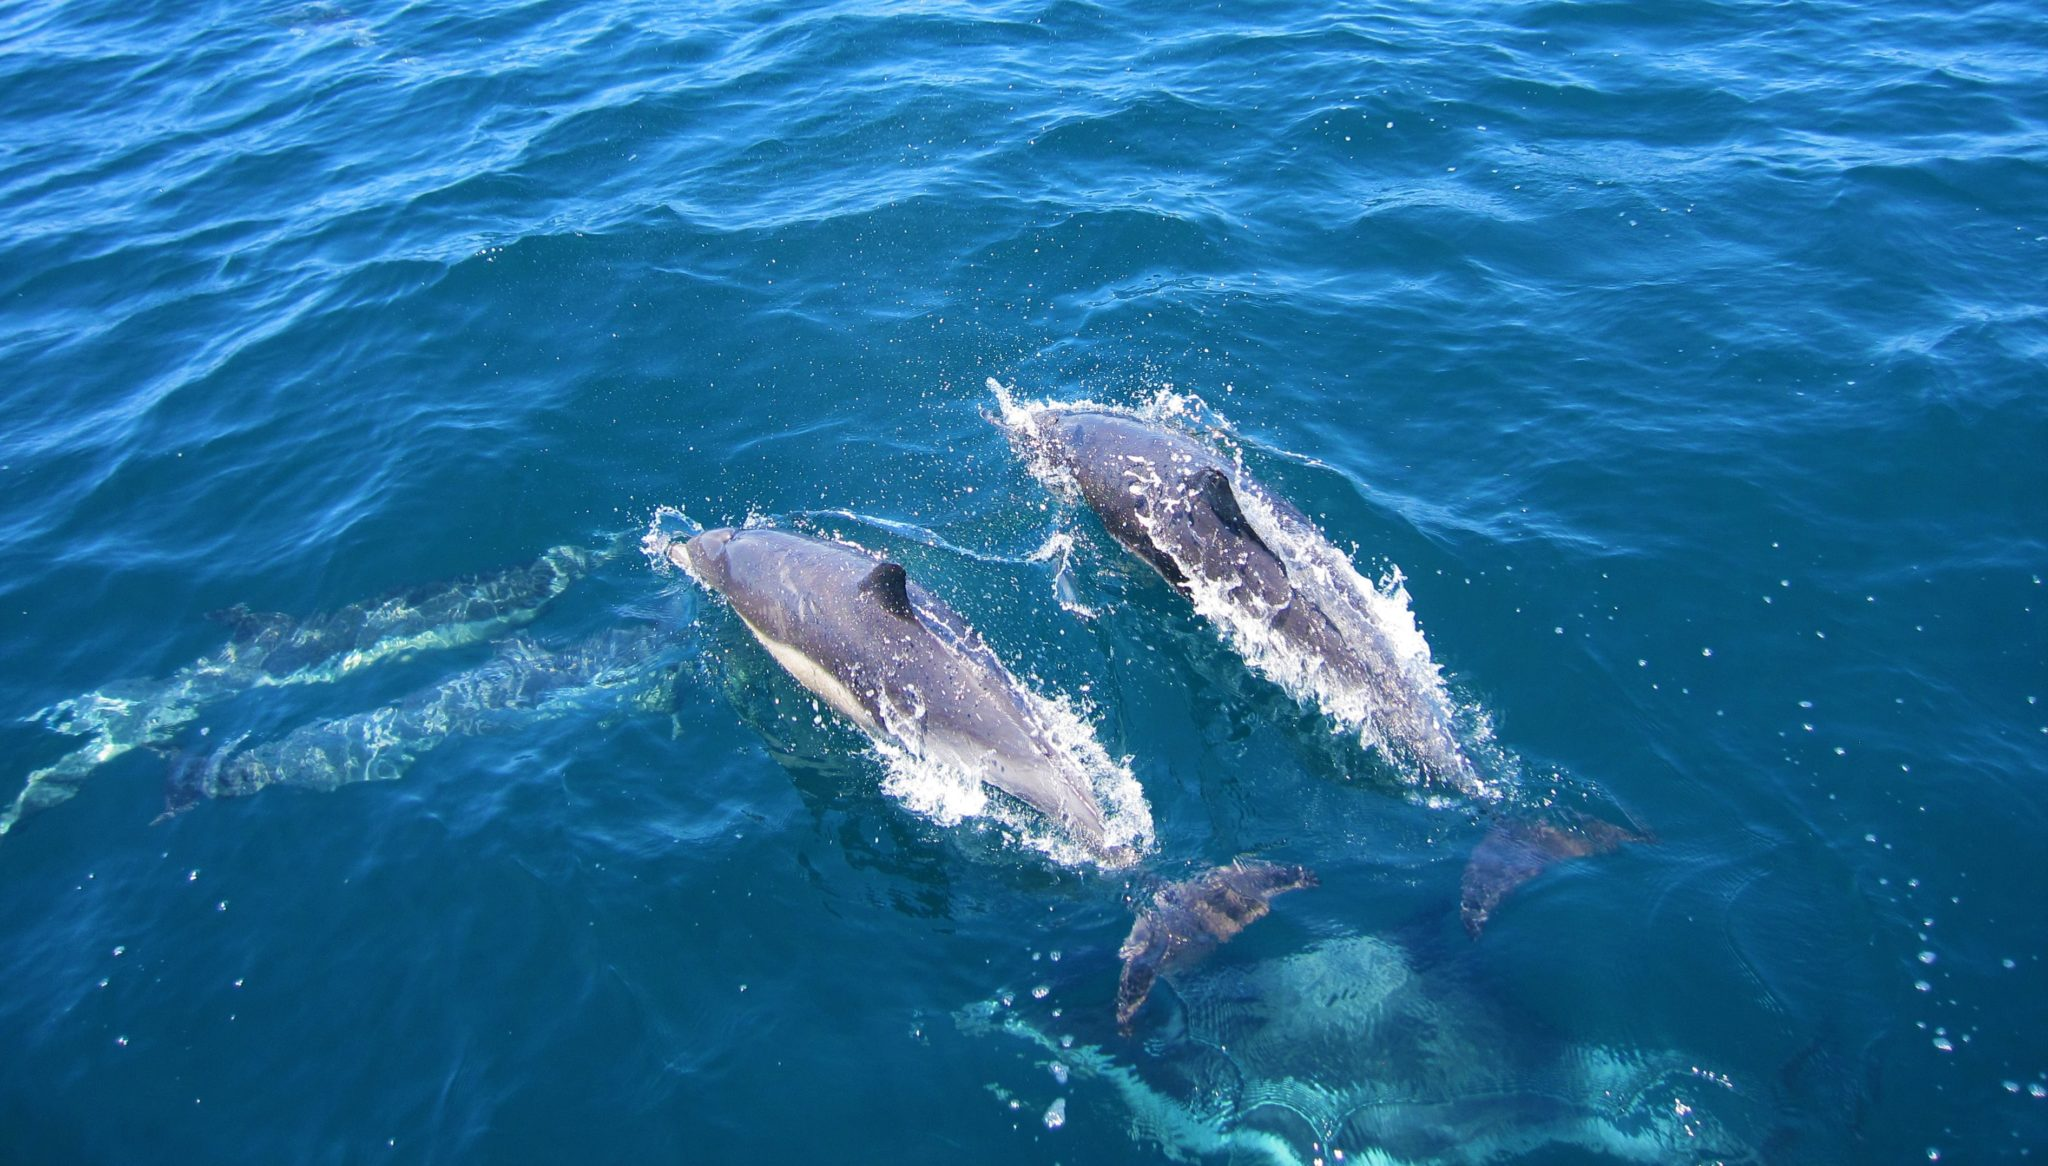 Two dophins are swimming next to each other at the sea surface